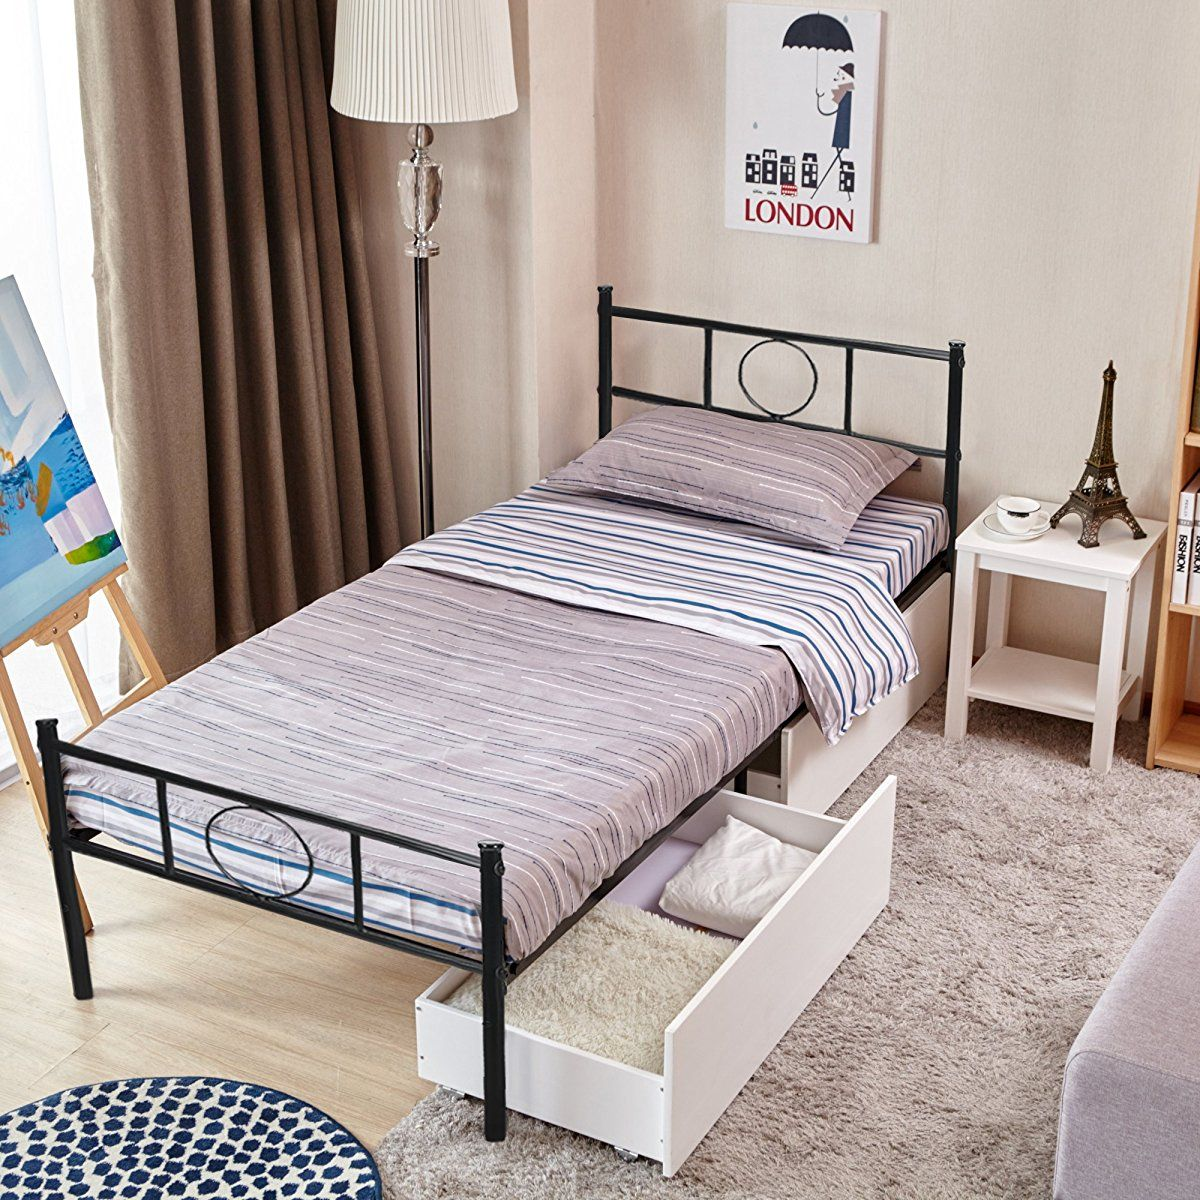 Greenforest Twin Size Bed Frame Stable Metal Slat Support No Boxspring Needed With Headboard Black With Images